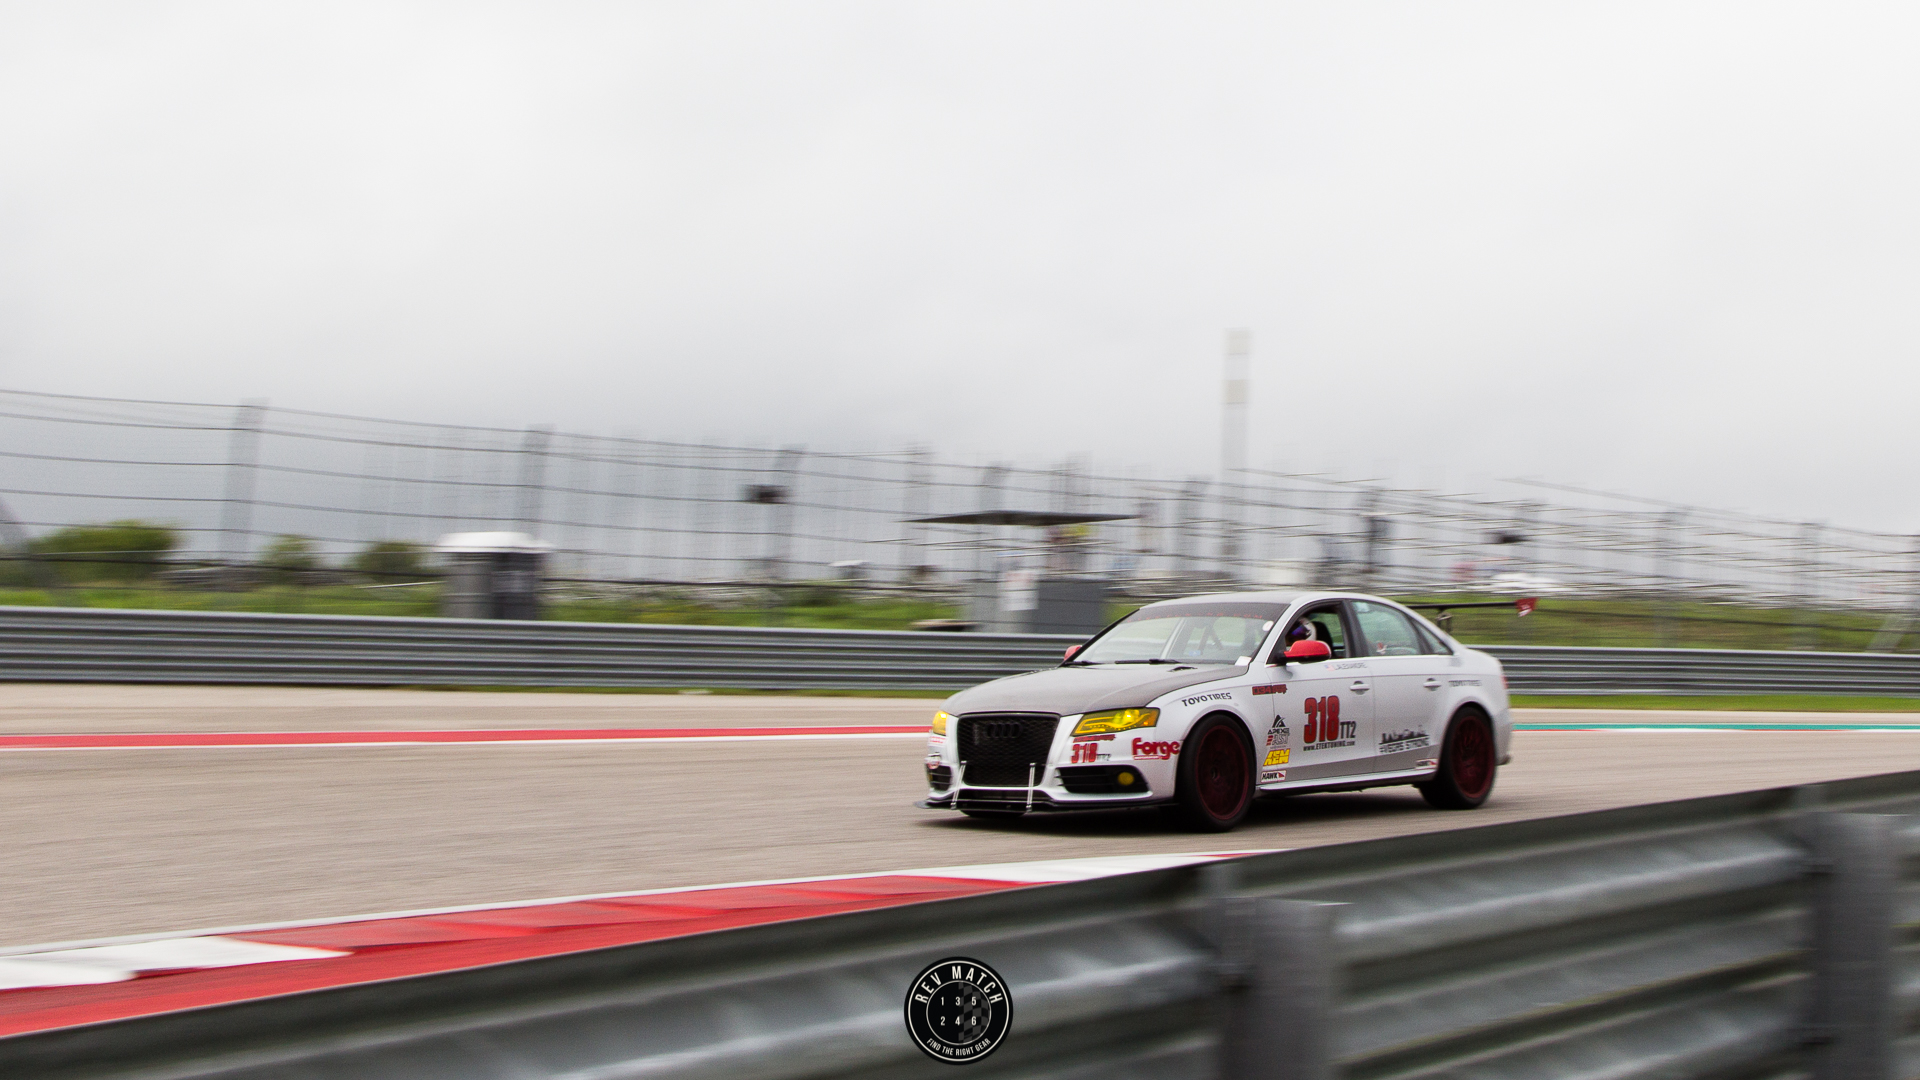 RMM x NASA at COTA 2018-89.jpg